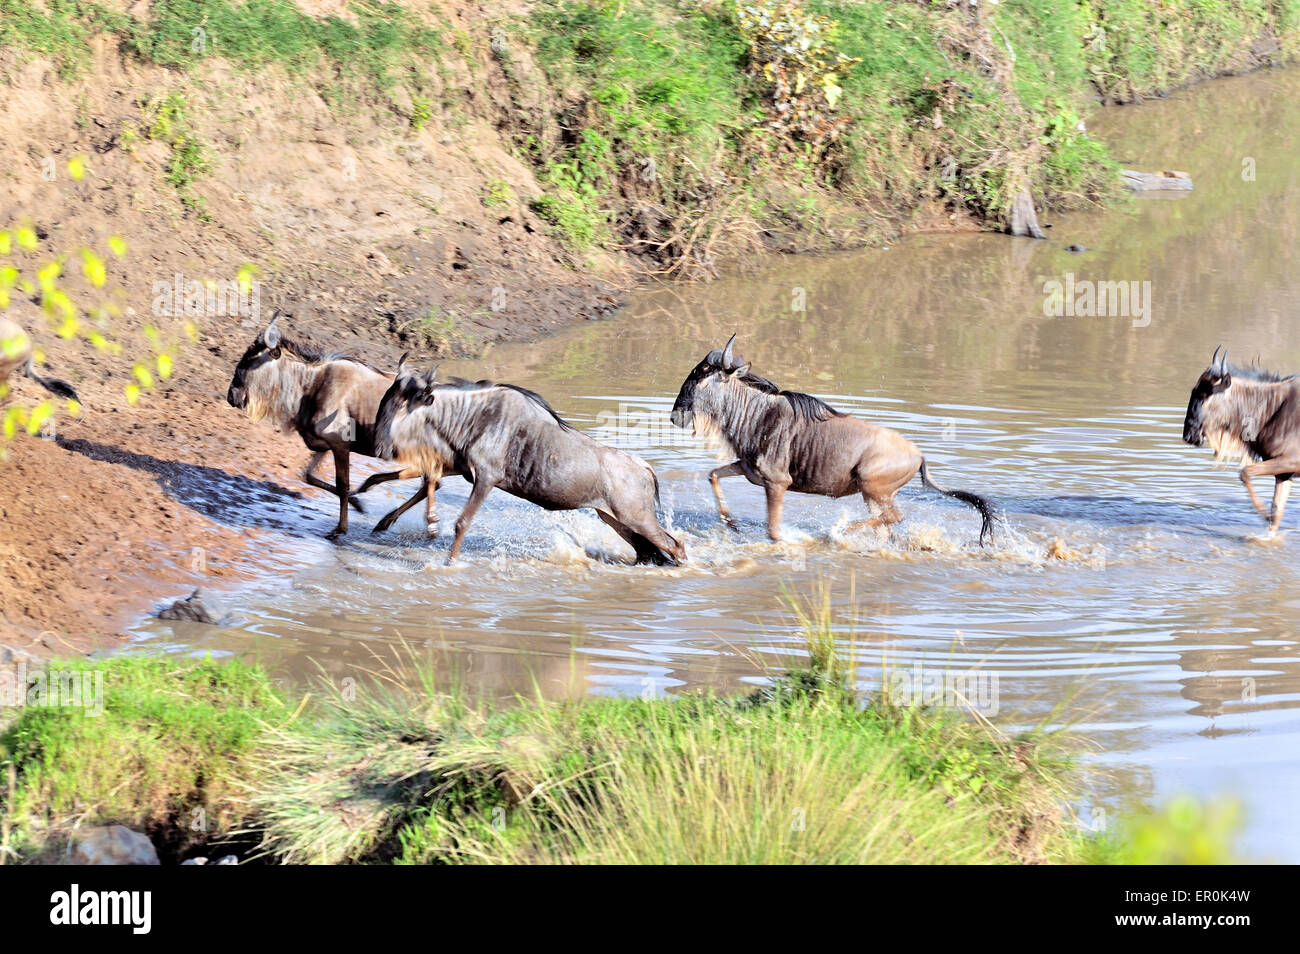 Excited Wildebeests crossing river for migration - Stock Image